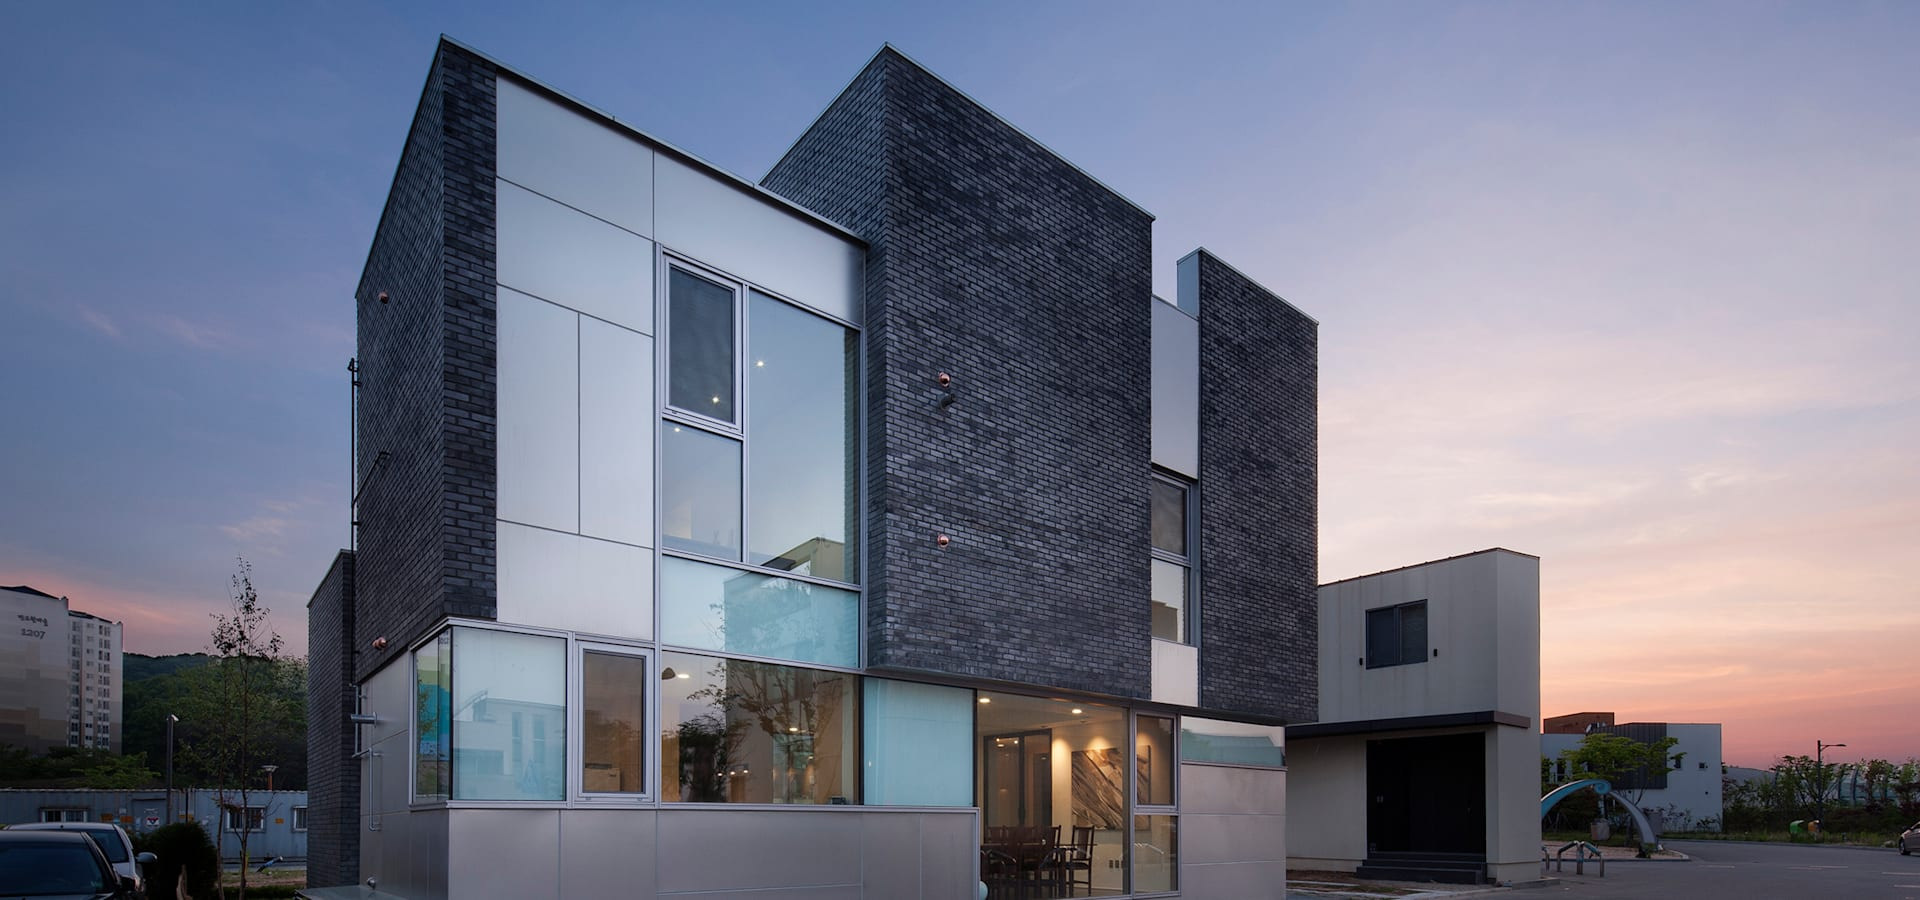 iSM Architects